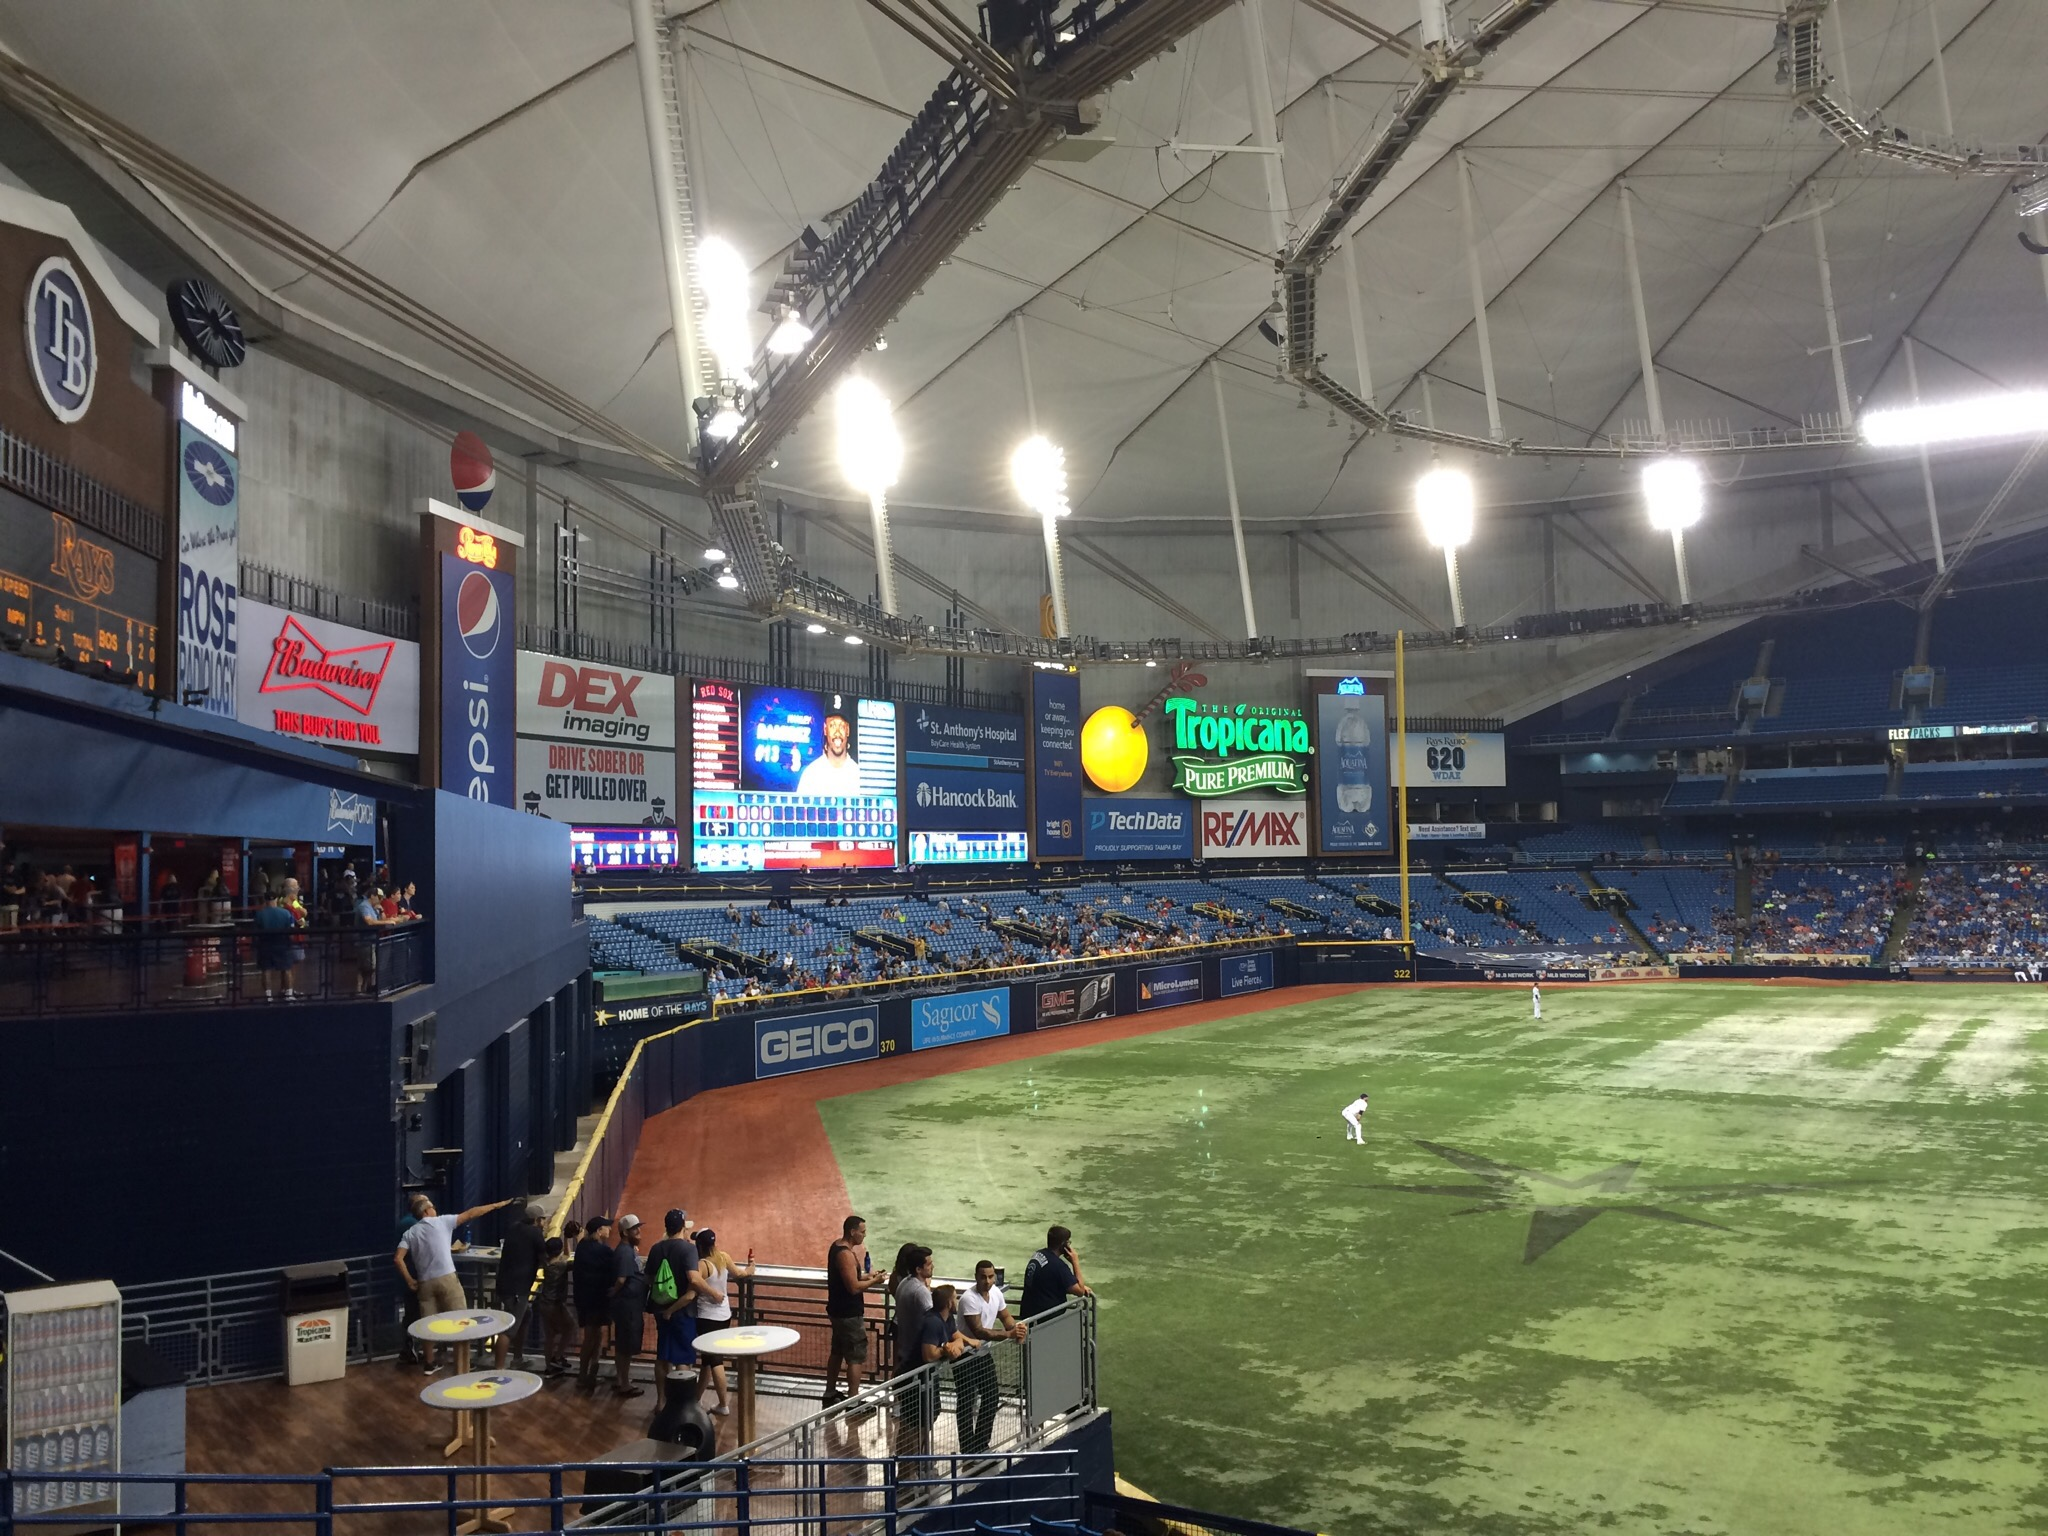 The 300s Reviews Tropicana Field The 300s